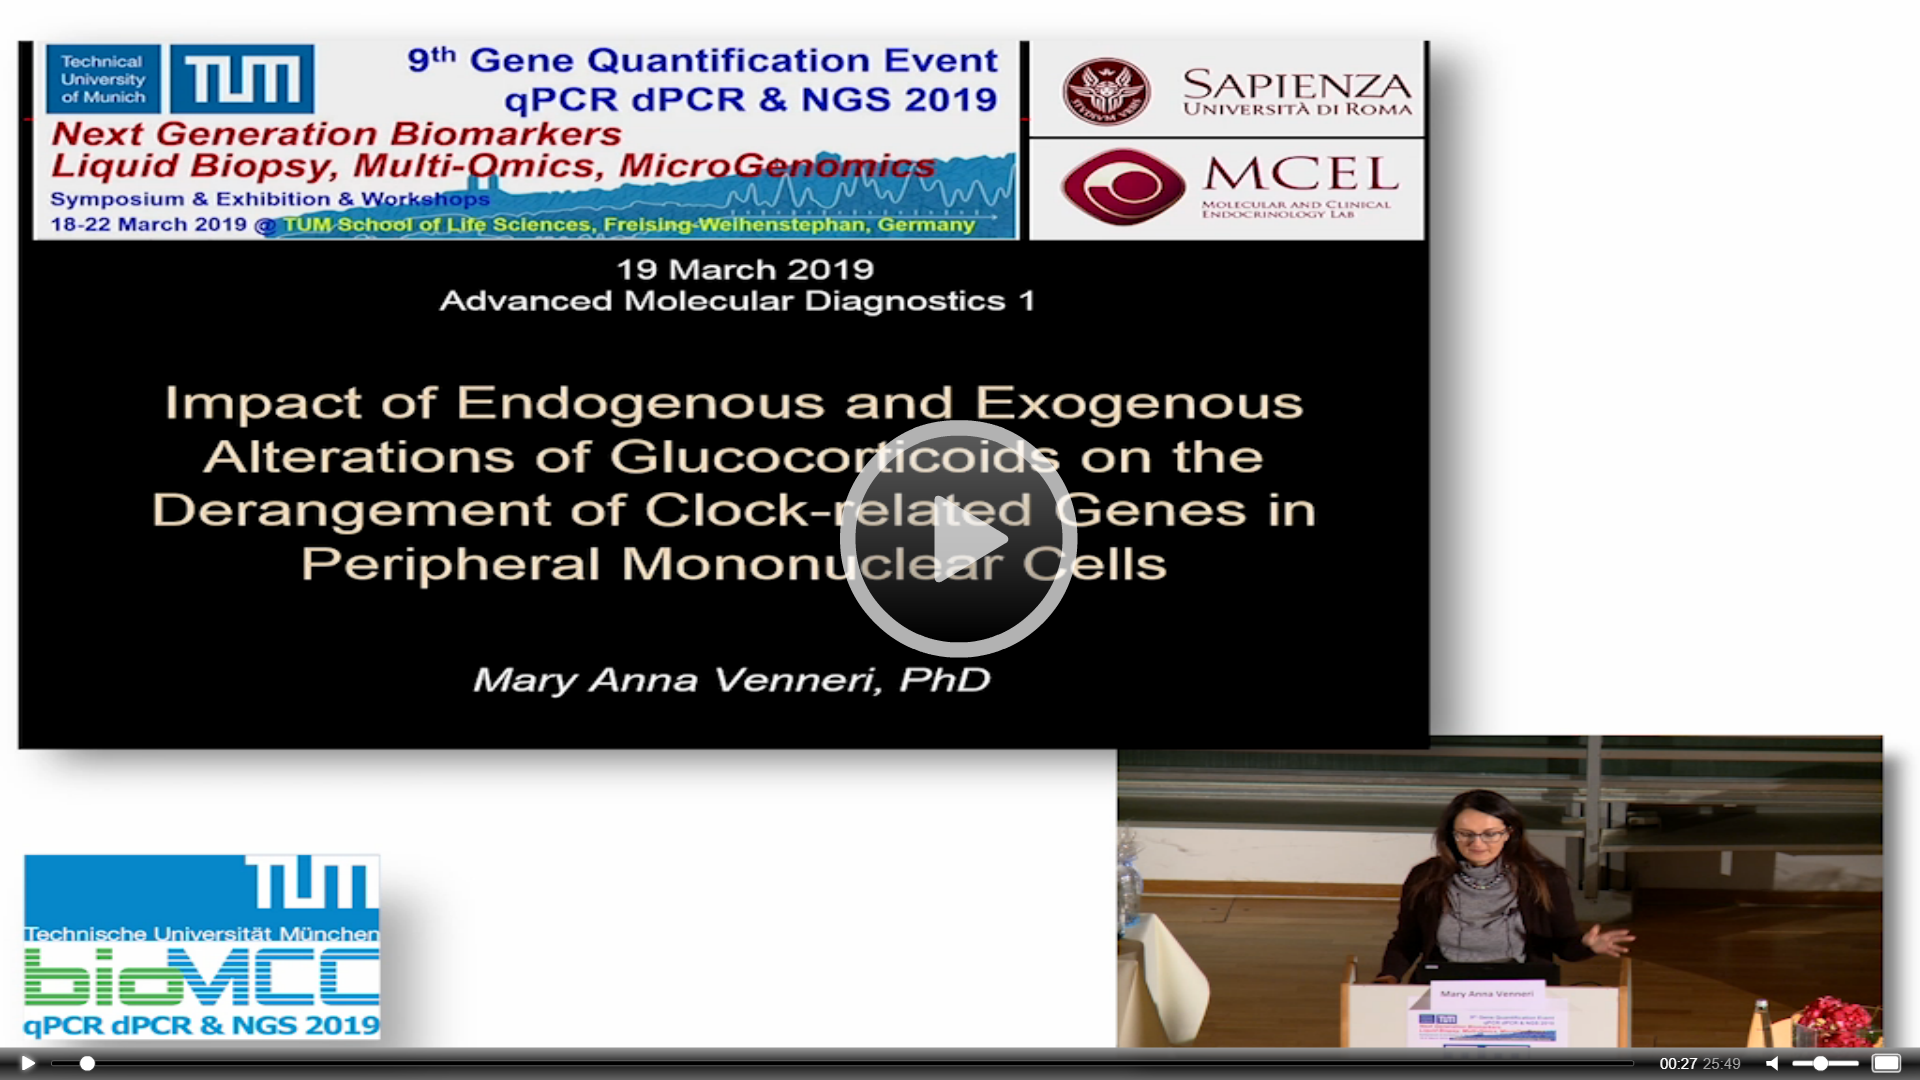 Impact of Endogenous and Exogenous Alterations of Glucocorticoids on the Derangement of Clock-related Genes in Peripheral Mononuclear Cells